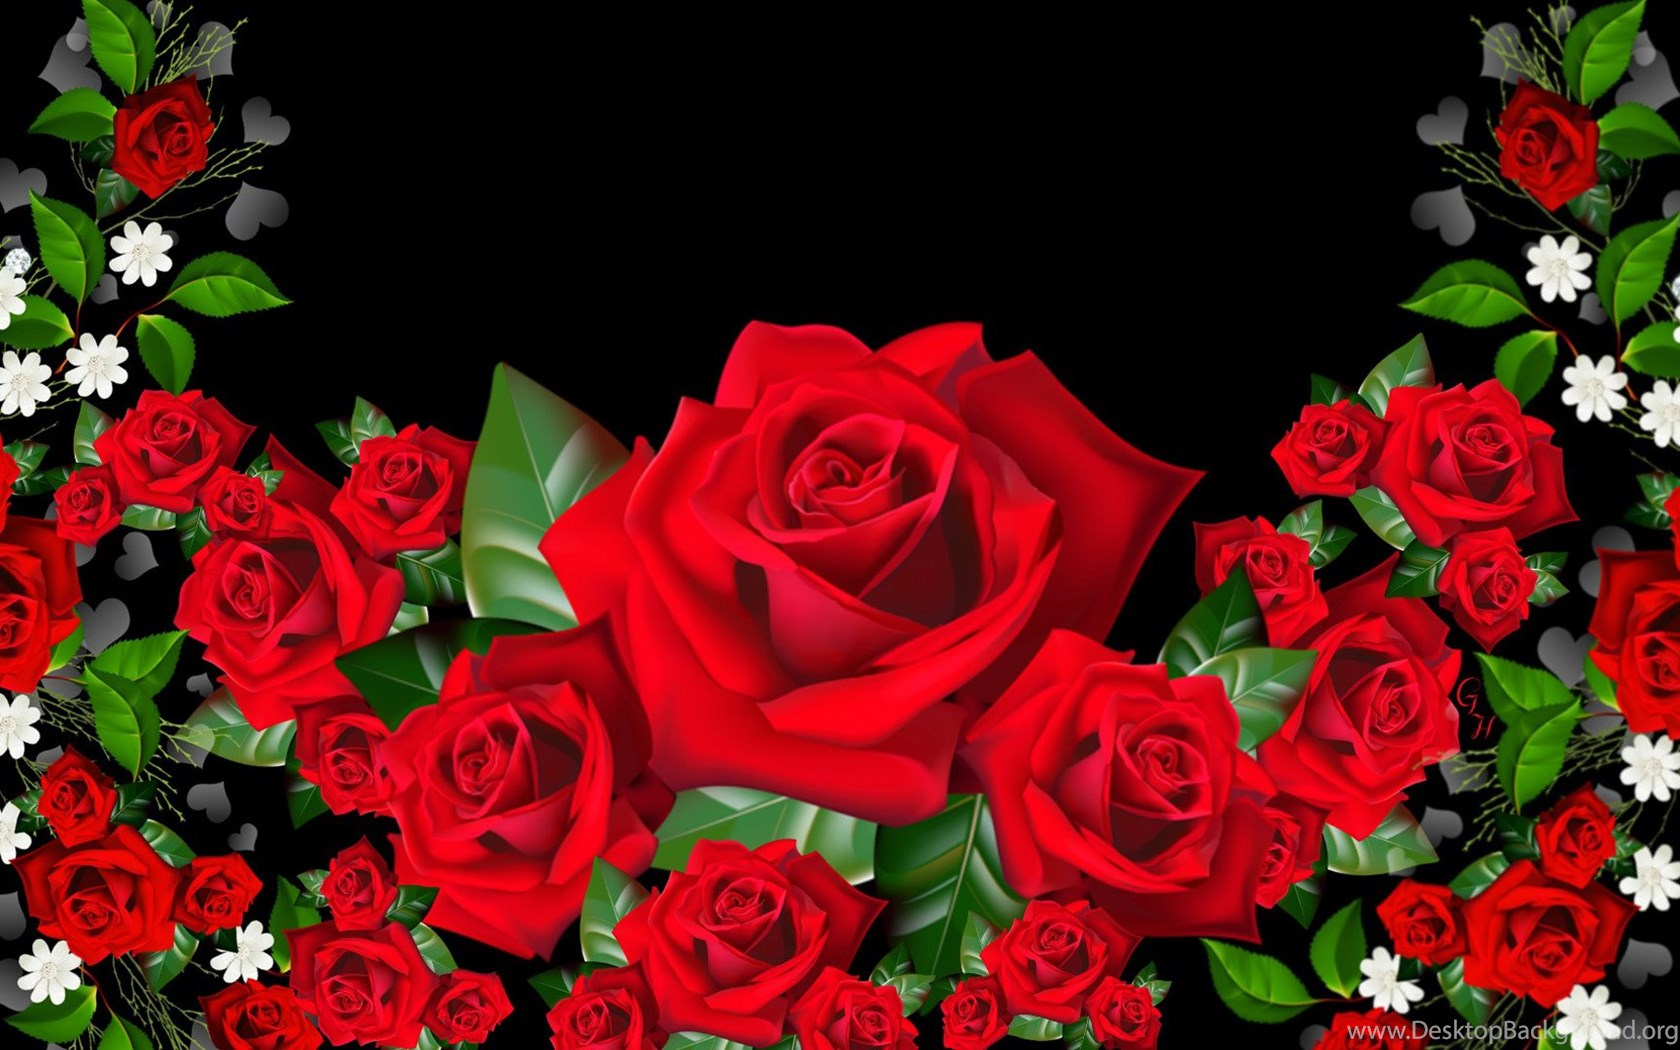 3D Rose Wallpapers 47, Rose Flower Images, Rose Pictures